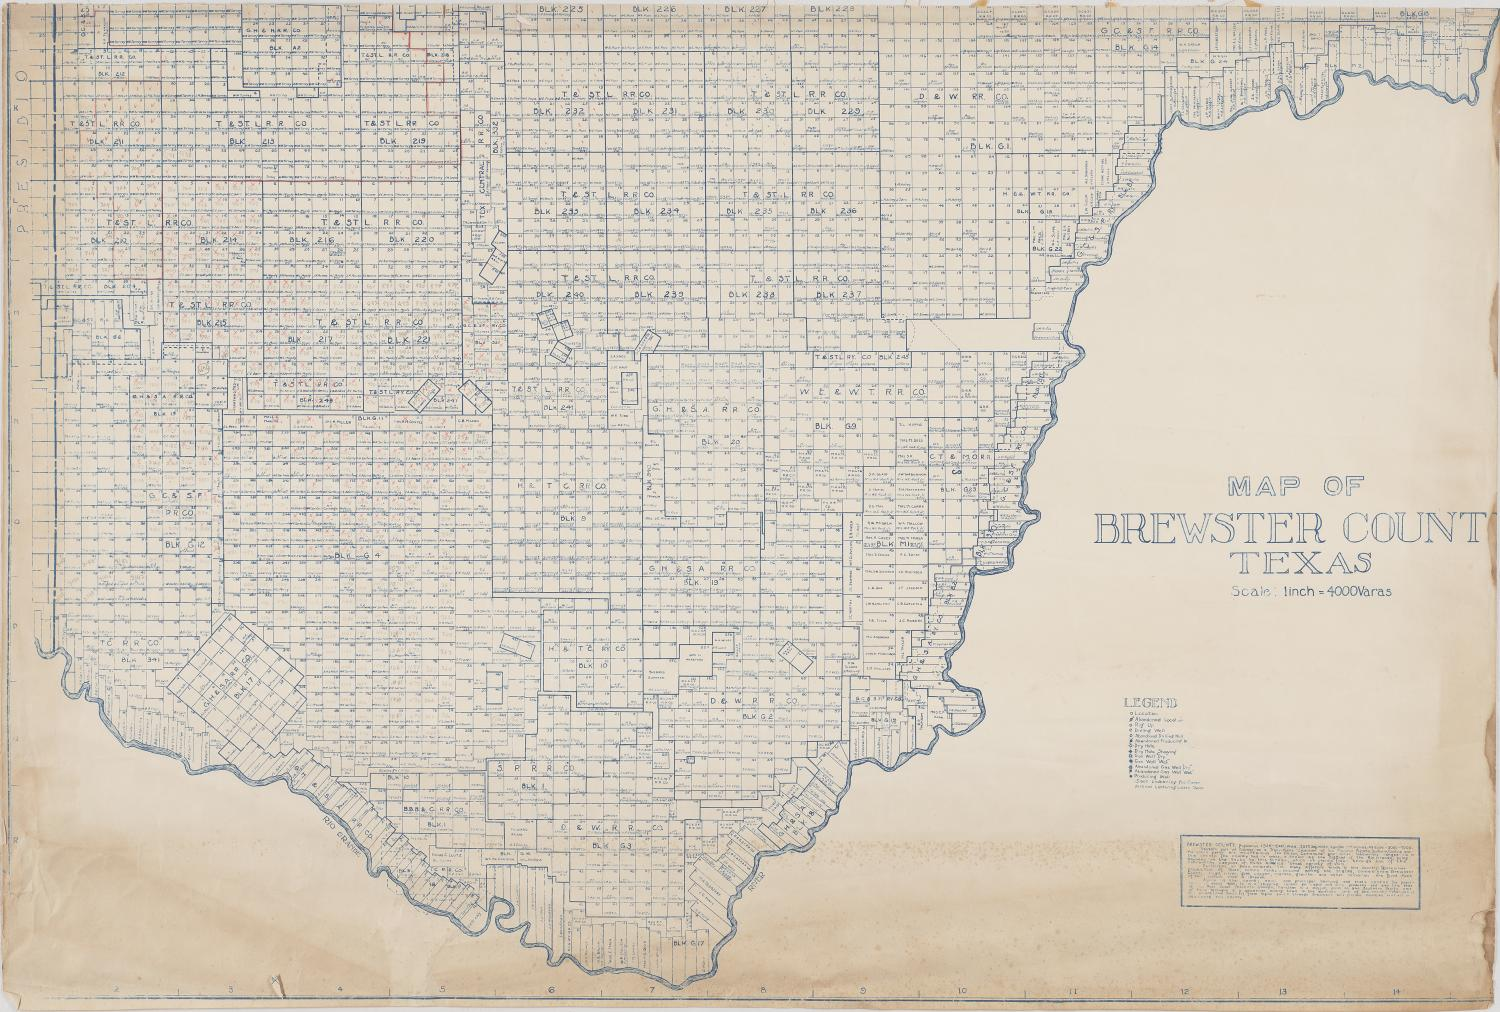 Map of Brewster County Texas